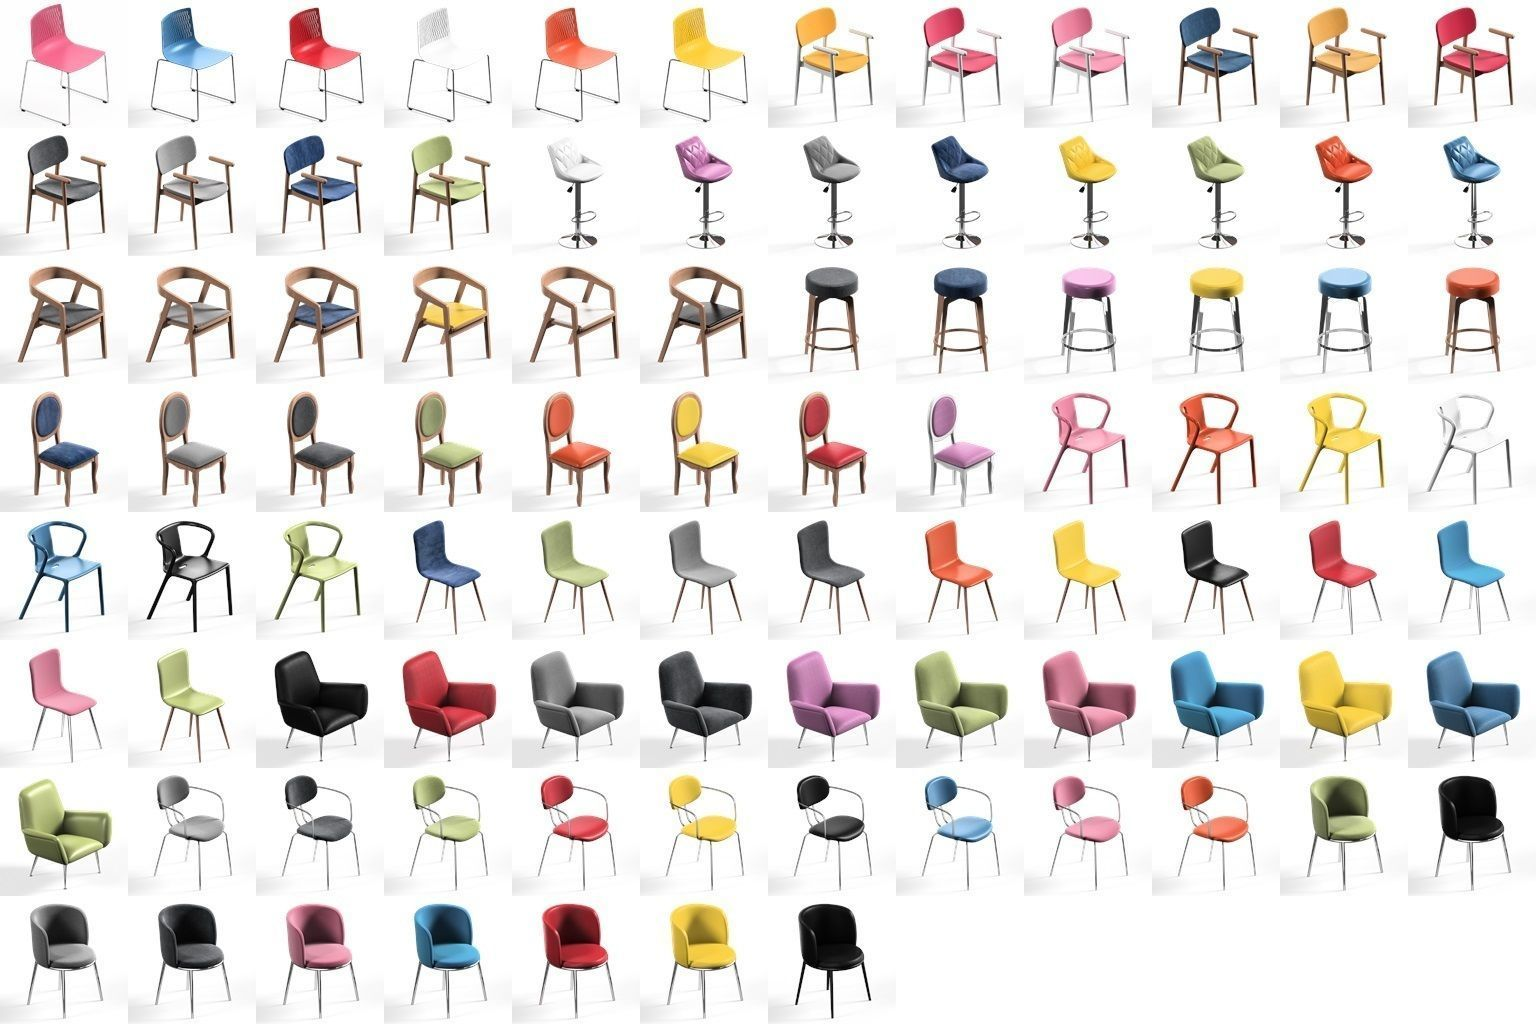 Chair Pack collection 11 main models Plus 79 color variations